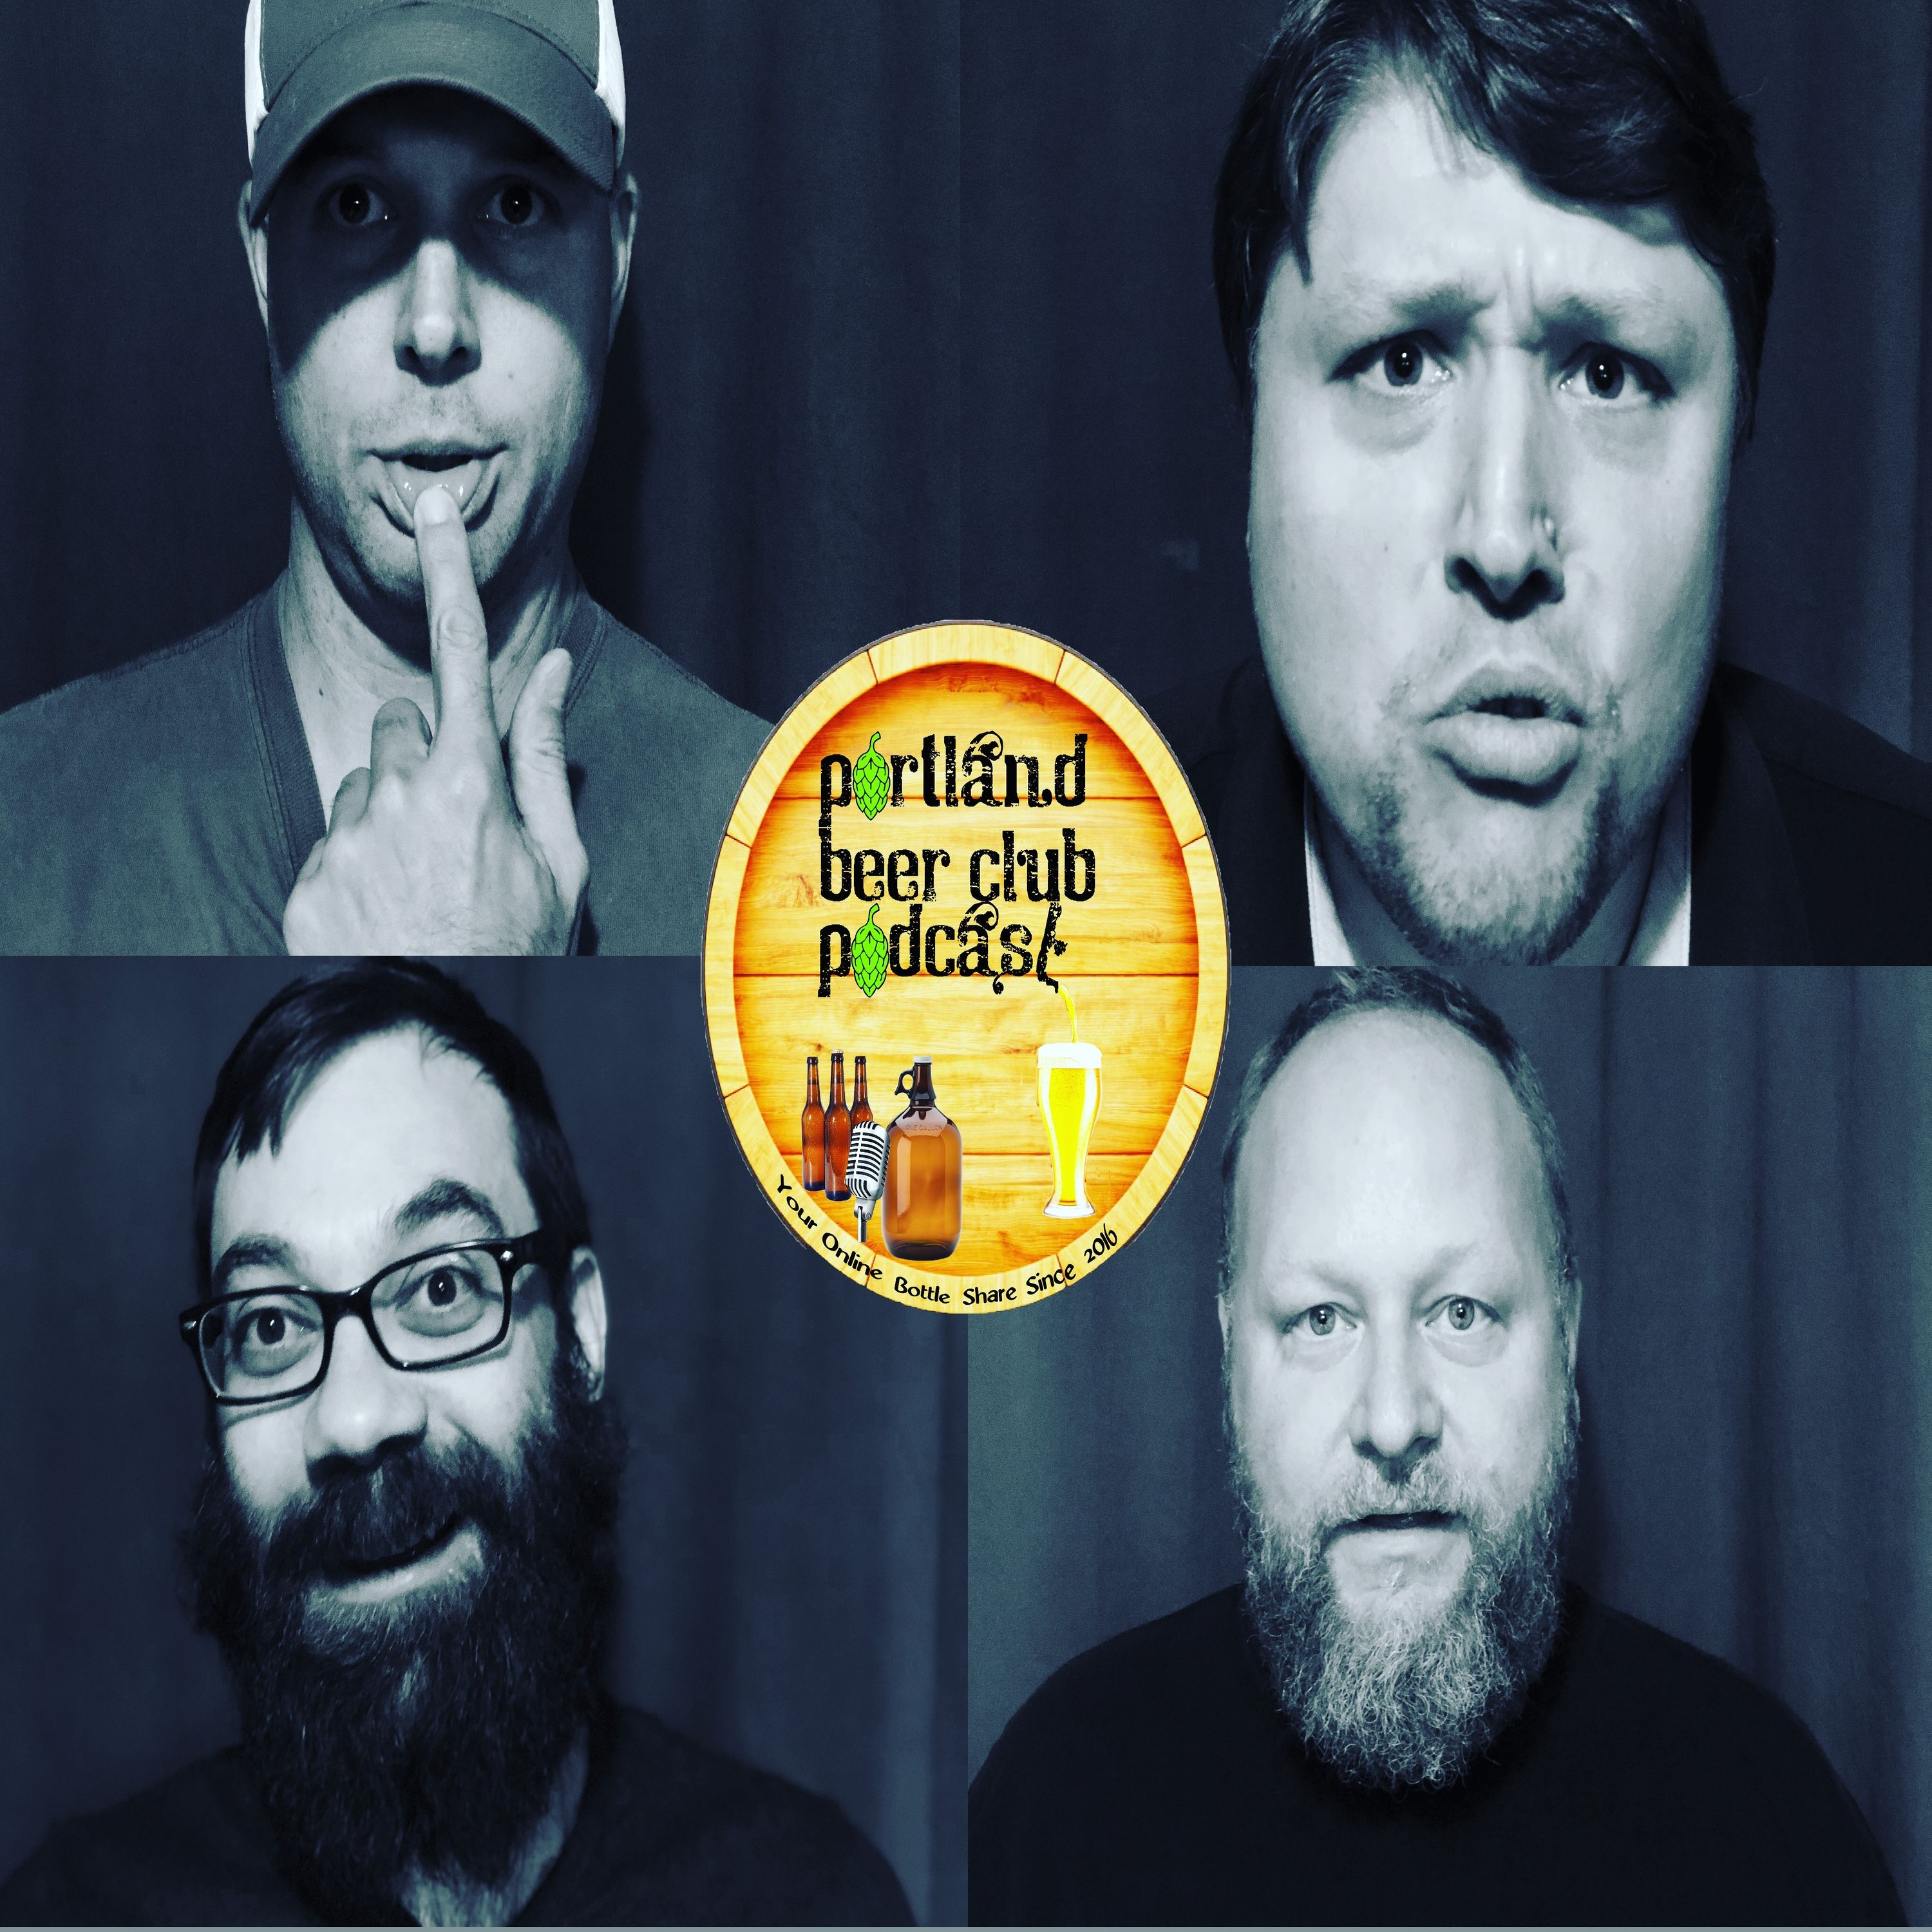 Portland Beer Club Podcast